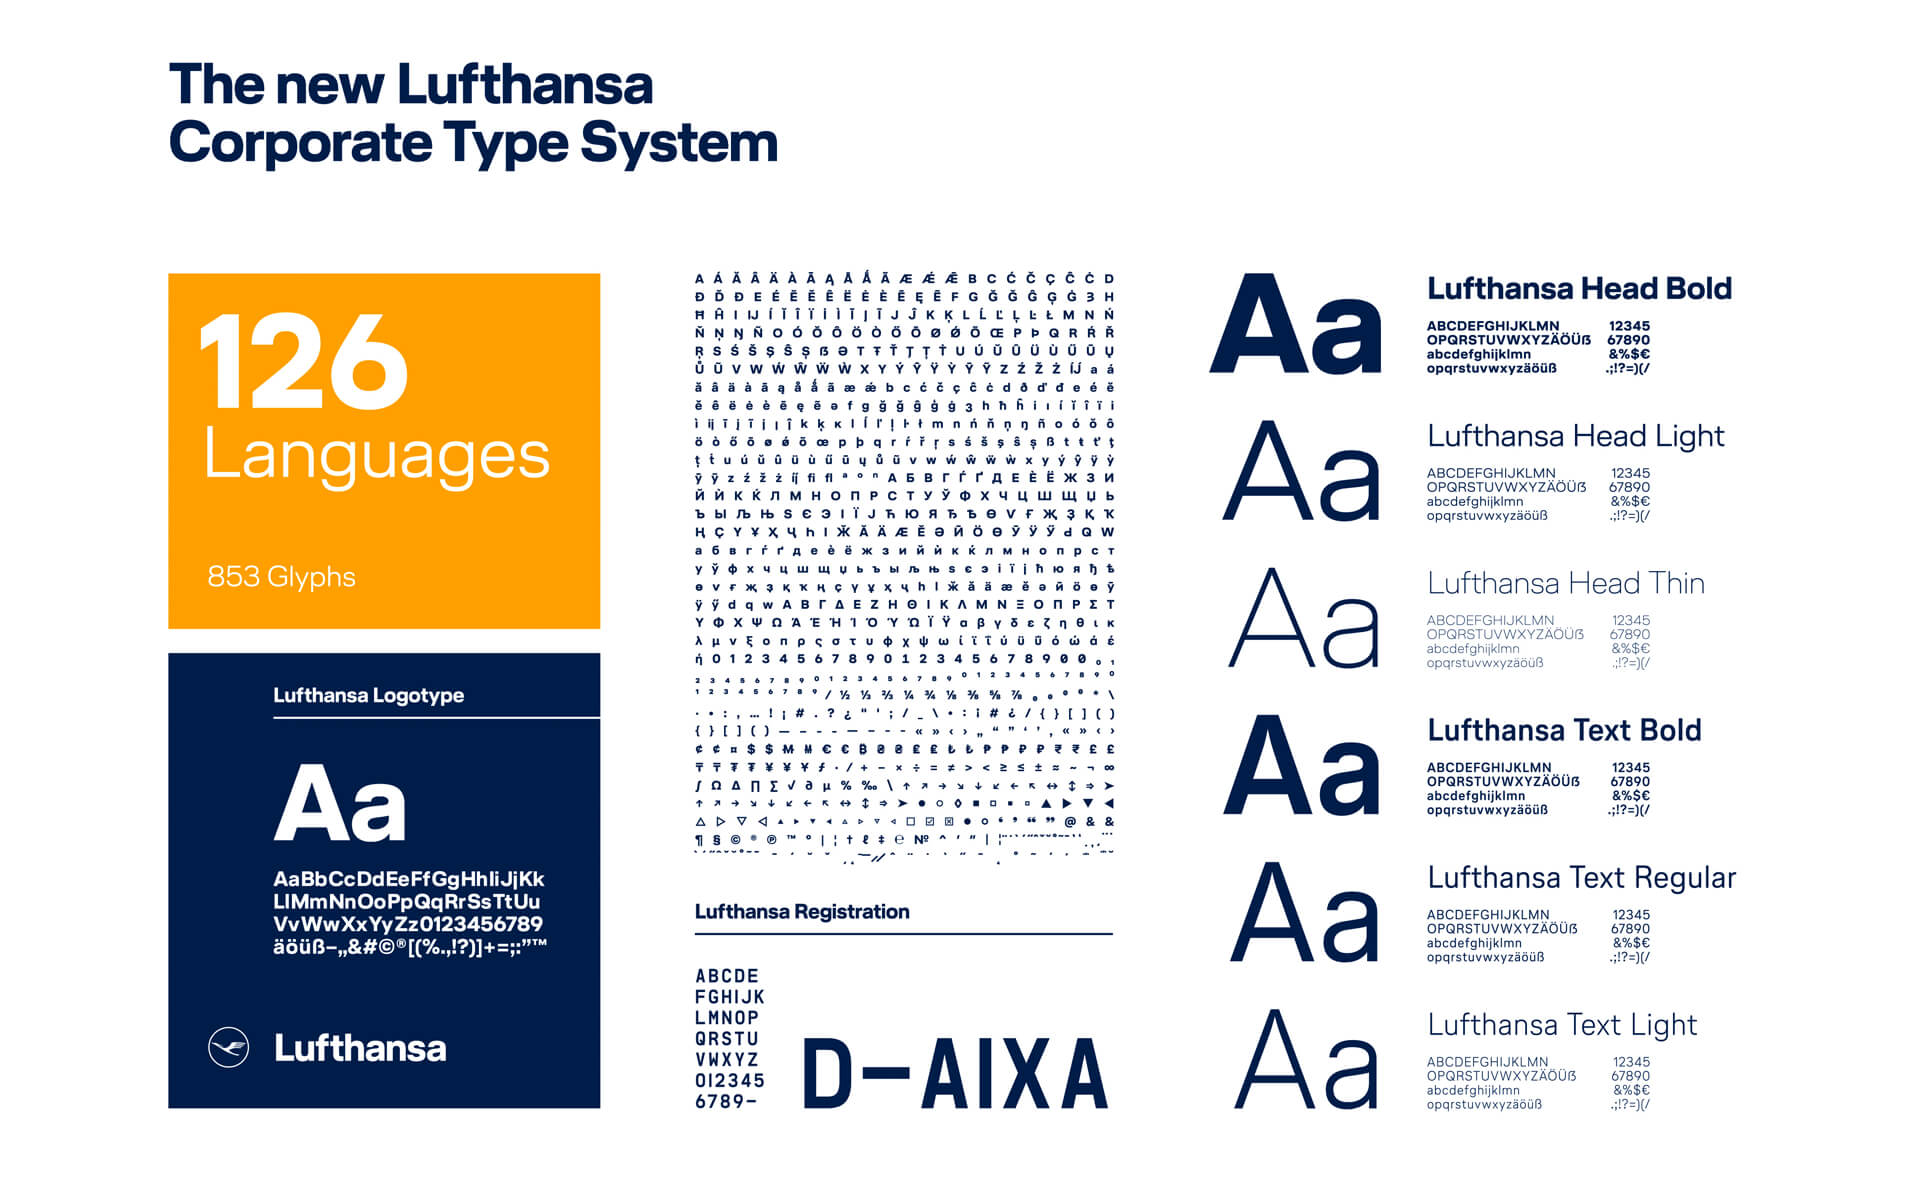 Lufthansa Corporate Design 2018, Redesign, Corporate Typeface